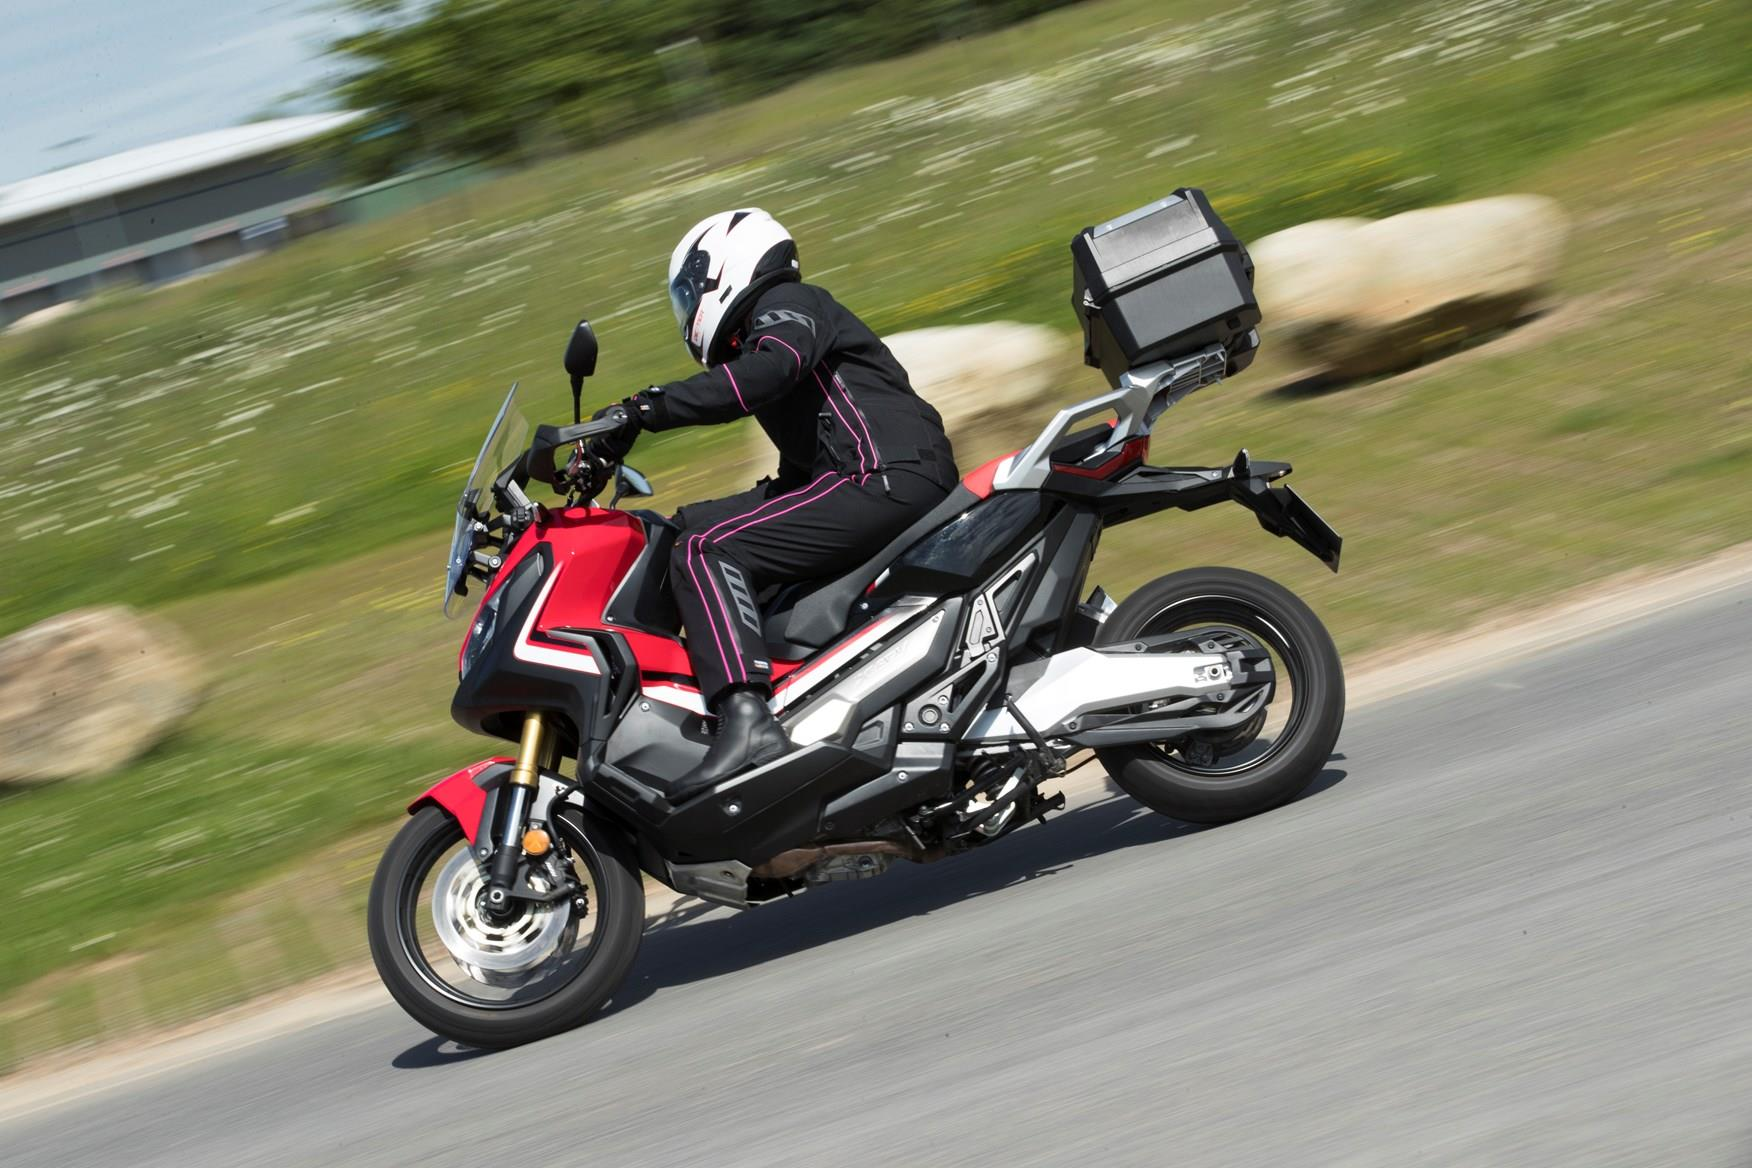 Honda X Adv Recalled For Potential Loss Of Power